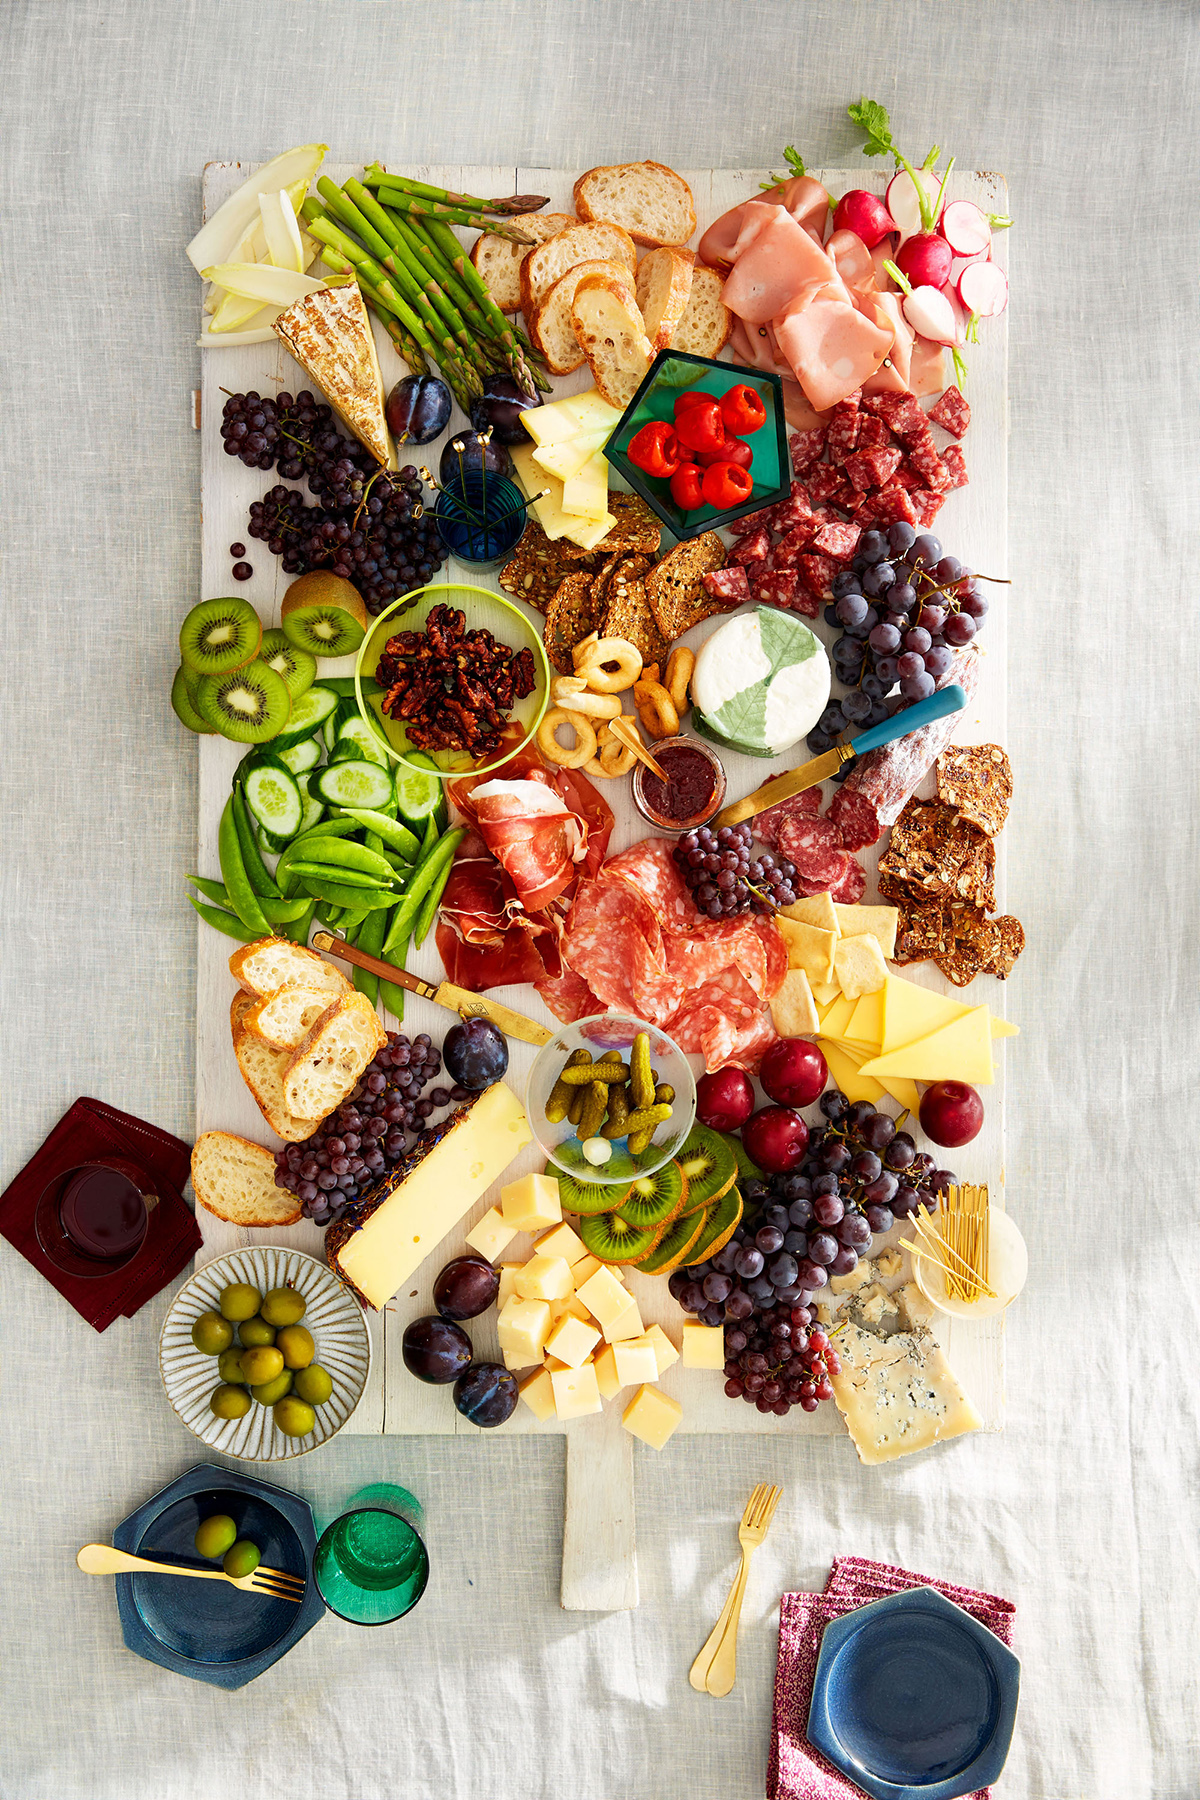 fruit cheese and vegetables on board appetizer spread